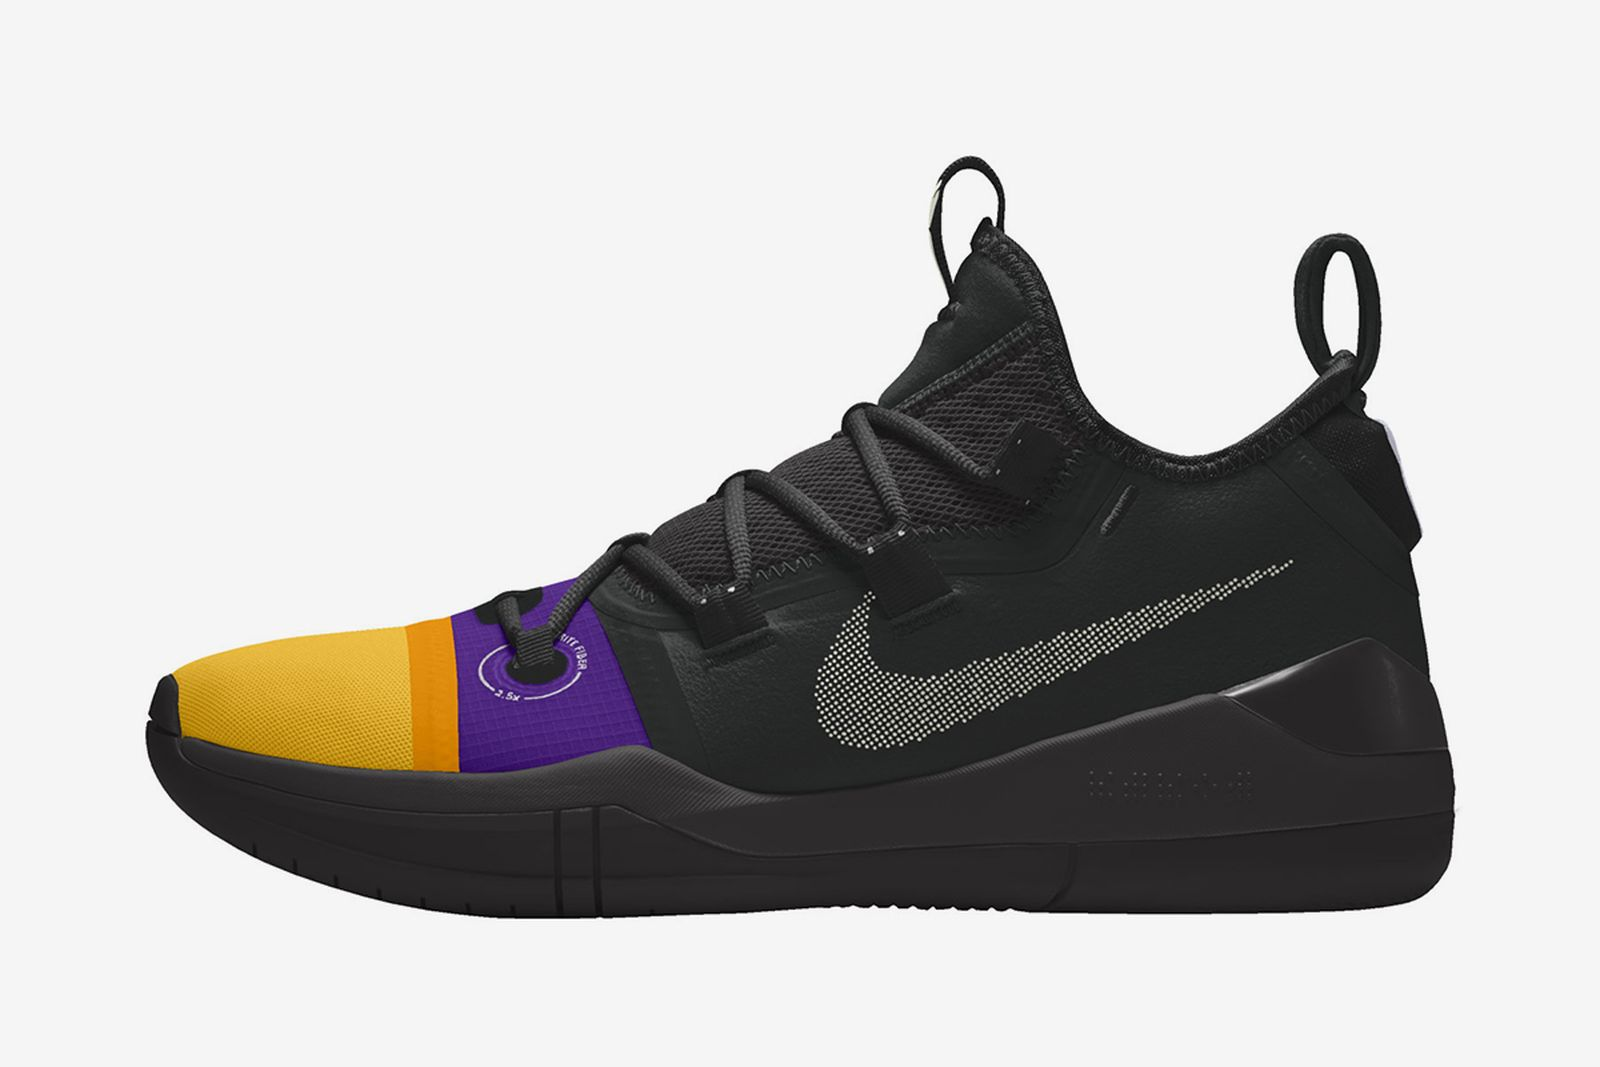 golpear sueño azafata  Nike Let the NBA's Youngest Stars Design Their Own Sneakers